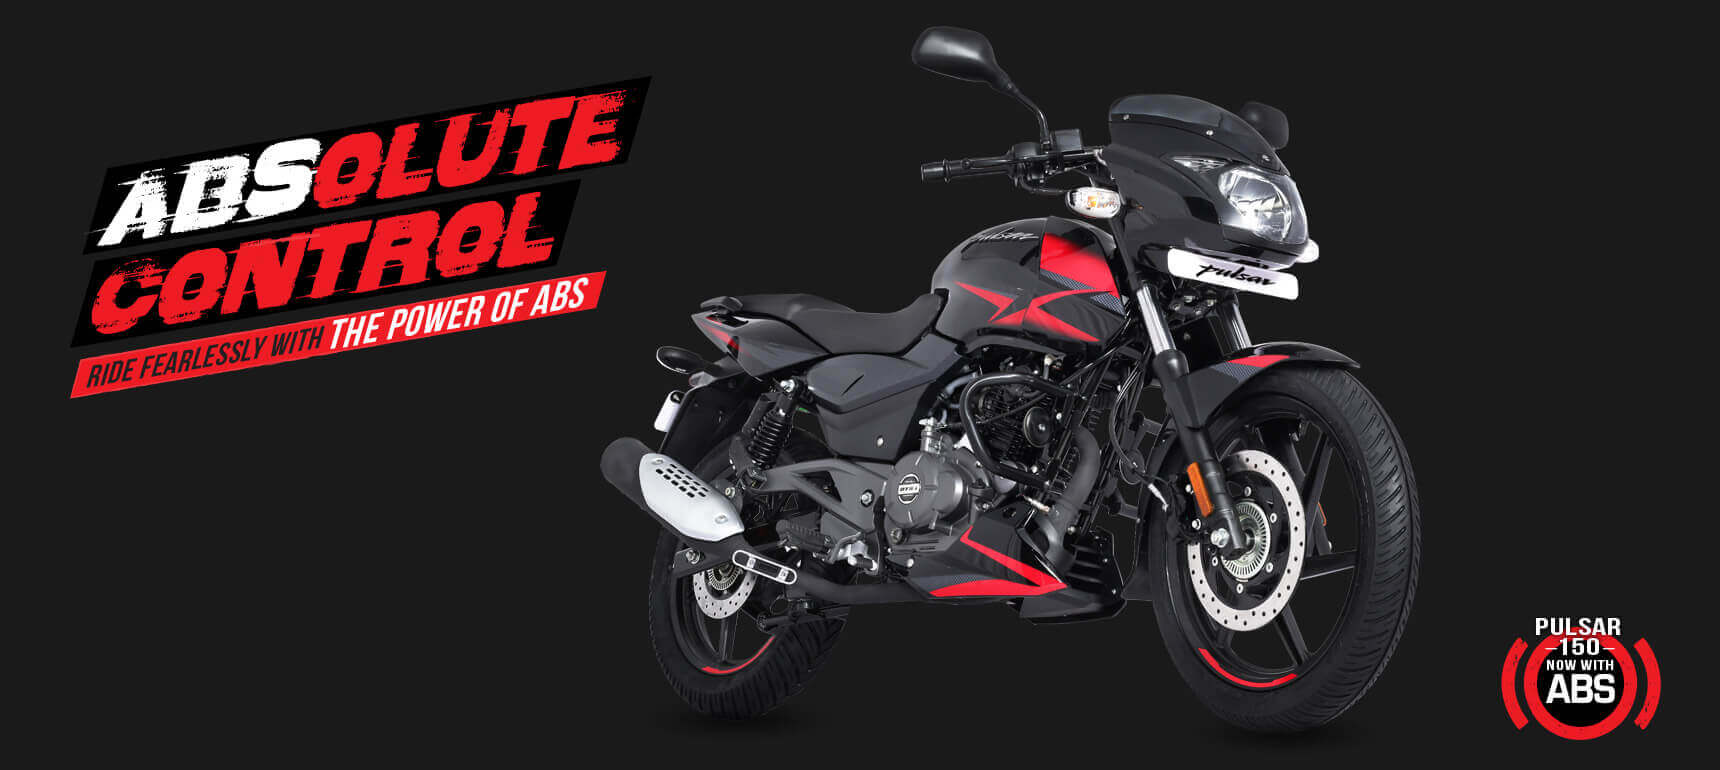 Black and red color Bajaj Pulsar 150 Twin Disk Motorcycle with ABS